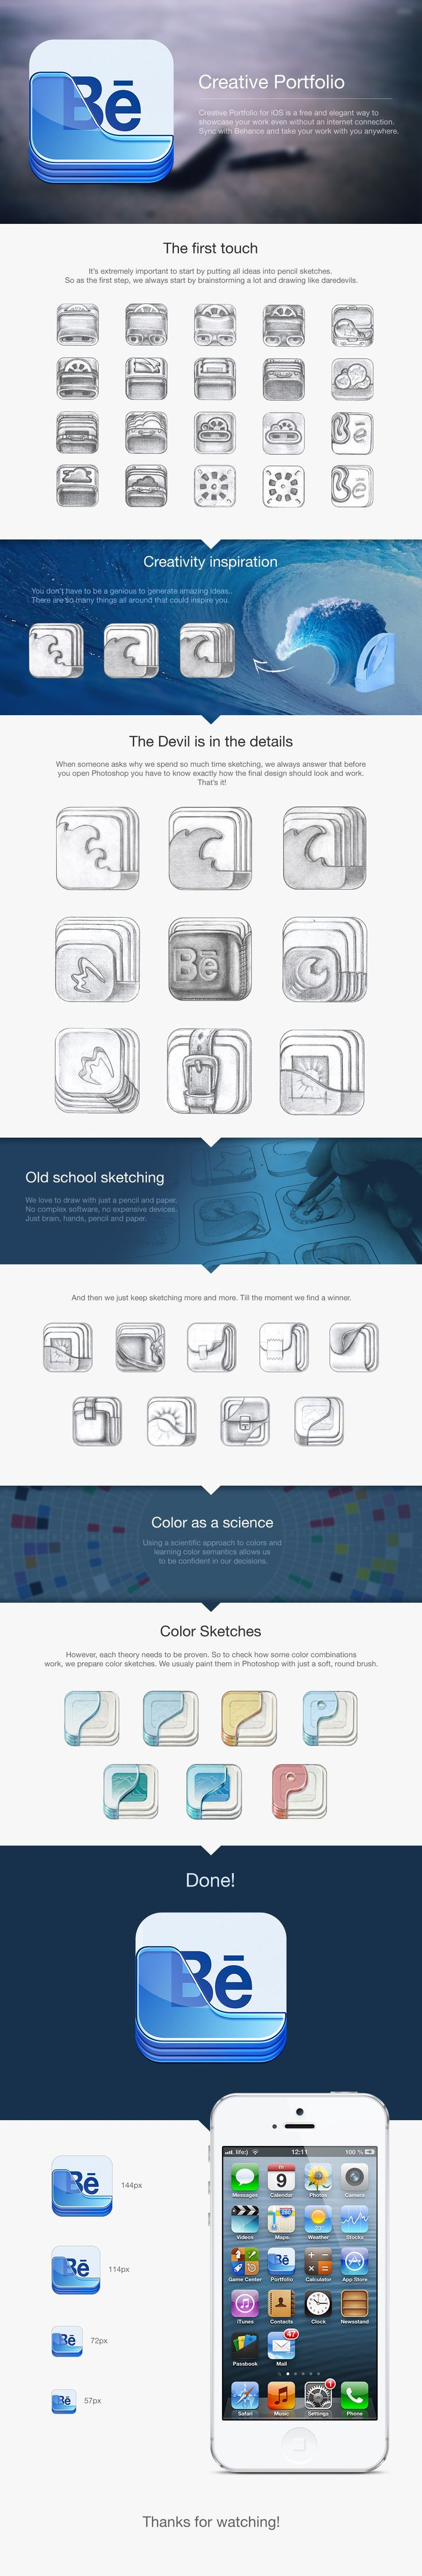 Interesting to see the progression of an app icon.  Simplicity is important. Behance Portfolio App Icon design case study